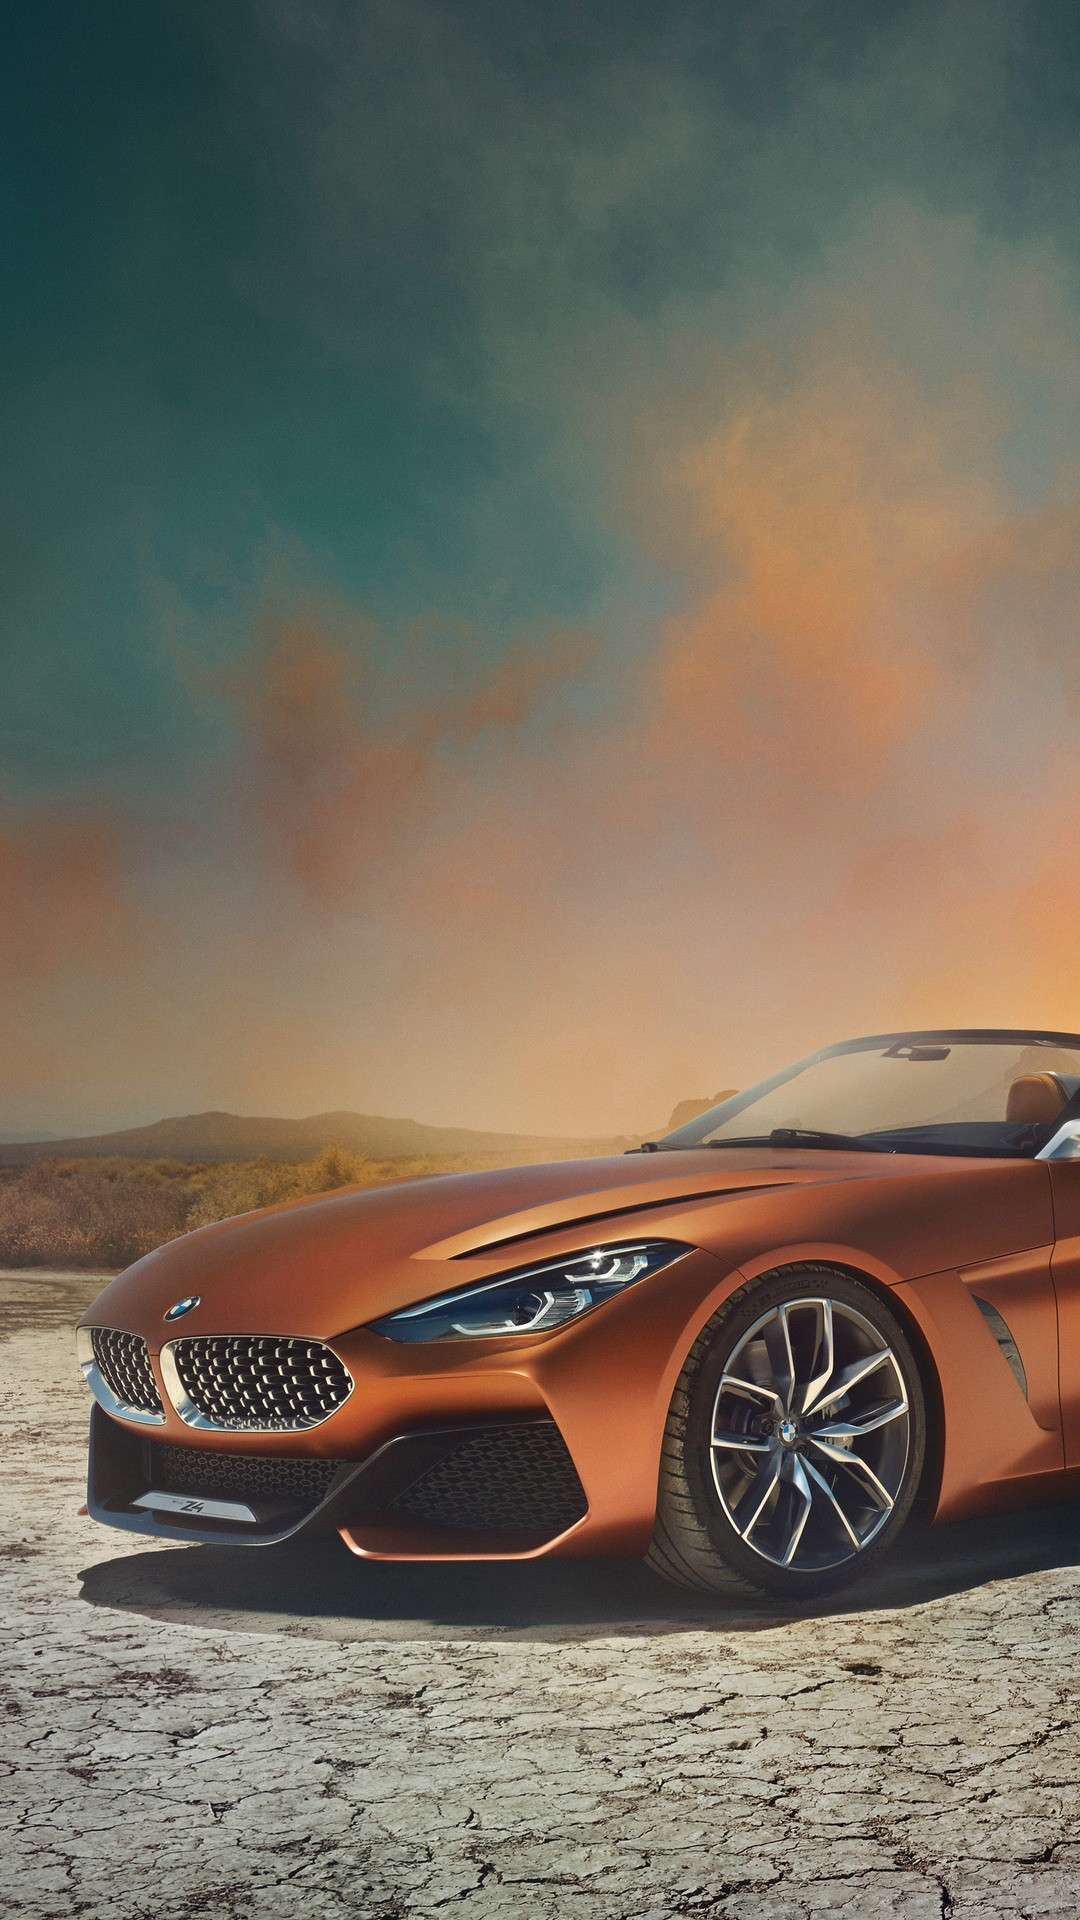 Bmw Concept Z4 2017 Cr Wallpaper